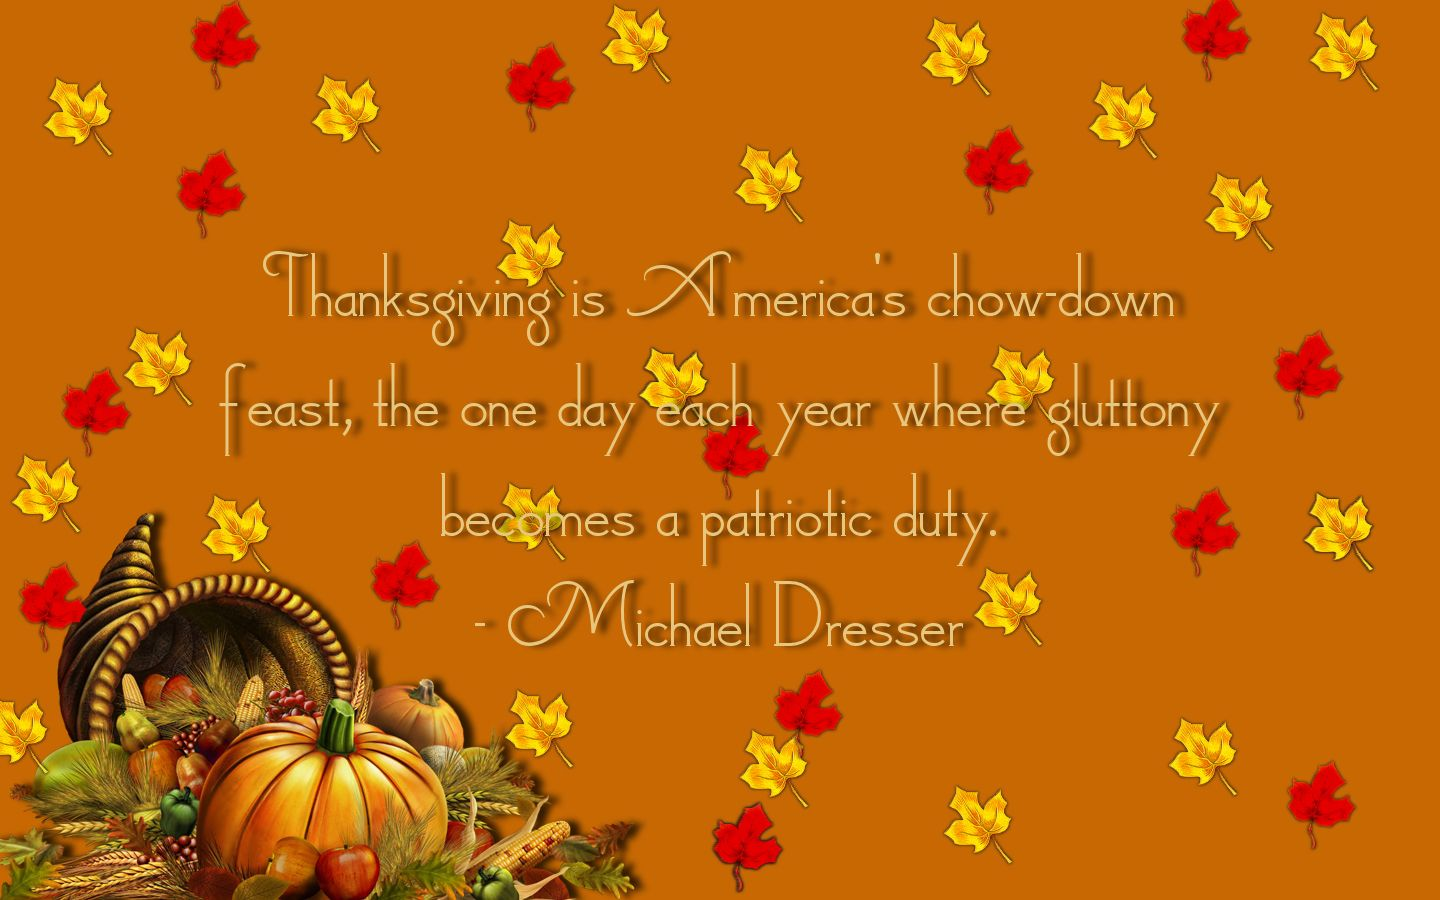 Thanksgiving Quotes Wallpapers Hd Thanksgiving Wallpaper Free Thanksgiving Wallpaper Thanksgiving Background